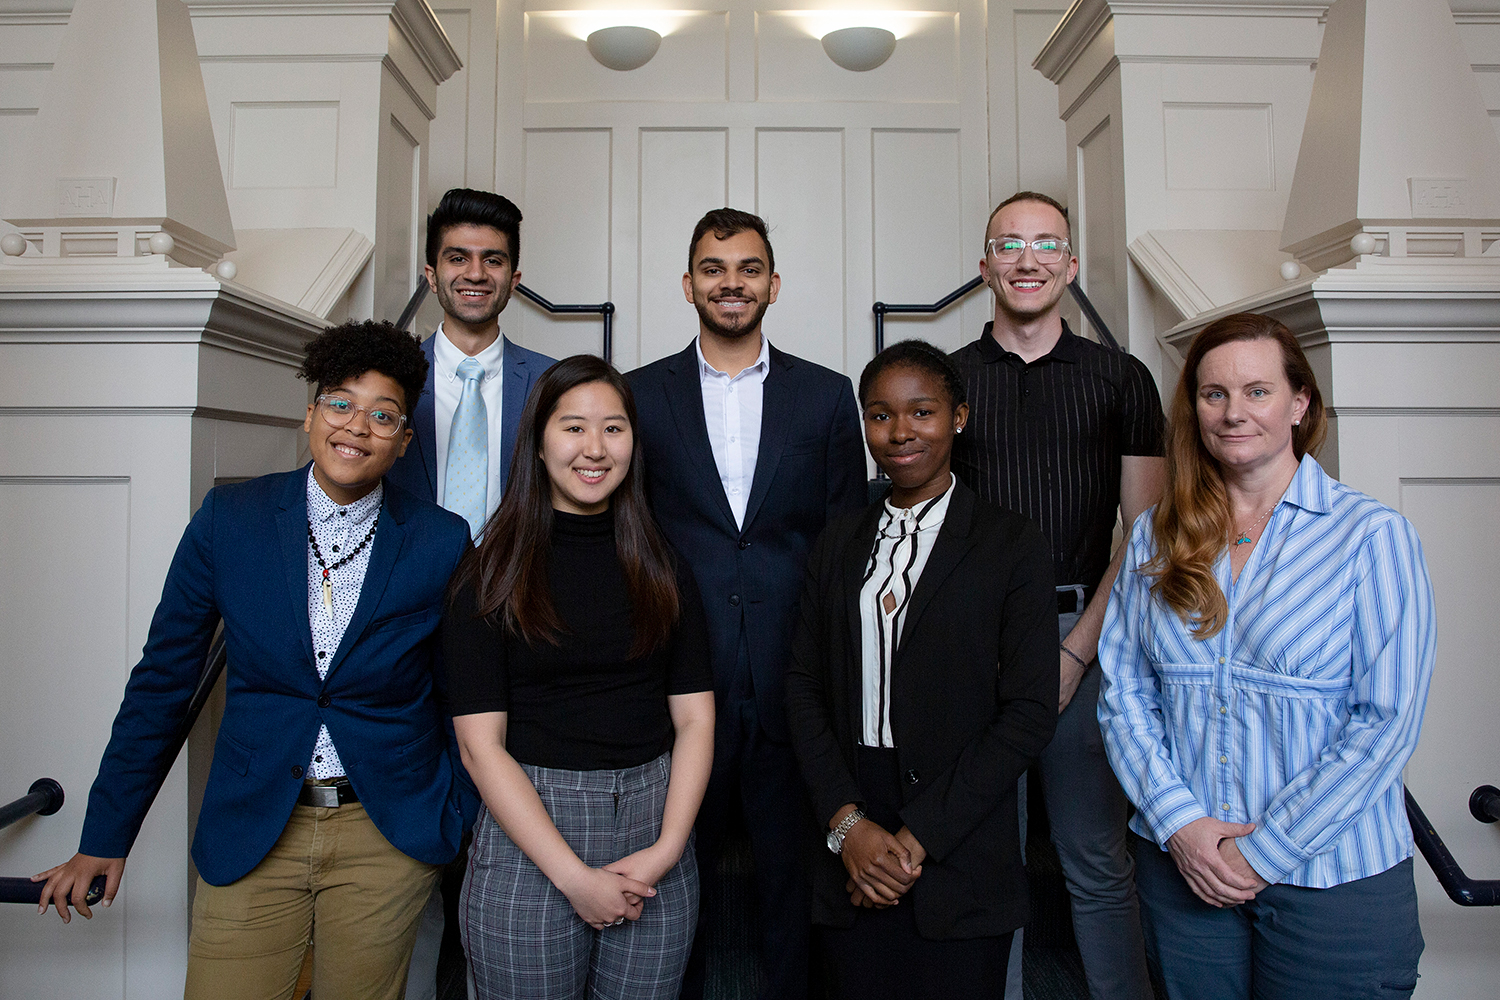 The 2019 Fulbright U.S. Student Program honorees. First row, from left to right: Chriss Sneed, Ph.D. student in sociology; Angela Kang '19 (CLAS); Brianna McClure '19 (CLAS); Kim Sawicki '19 (CAHNR). Second row, from left to right: Sahil Laul '19 (CLAS); Dhruv Shah '19 (CLAS); Omar Taweh '19 (CLAS). (Bri Diaz/UConn Photo)